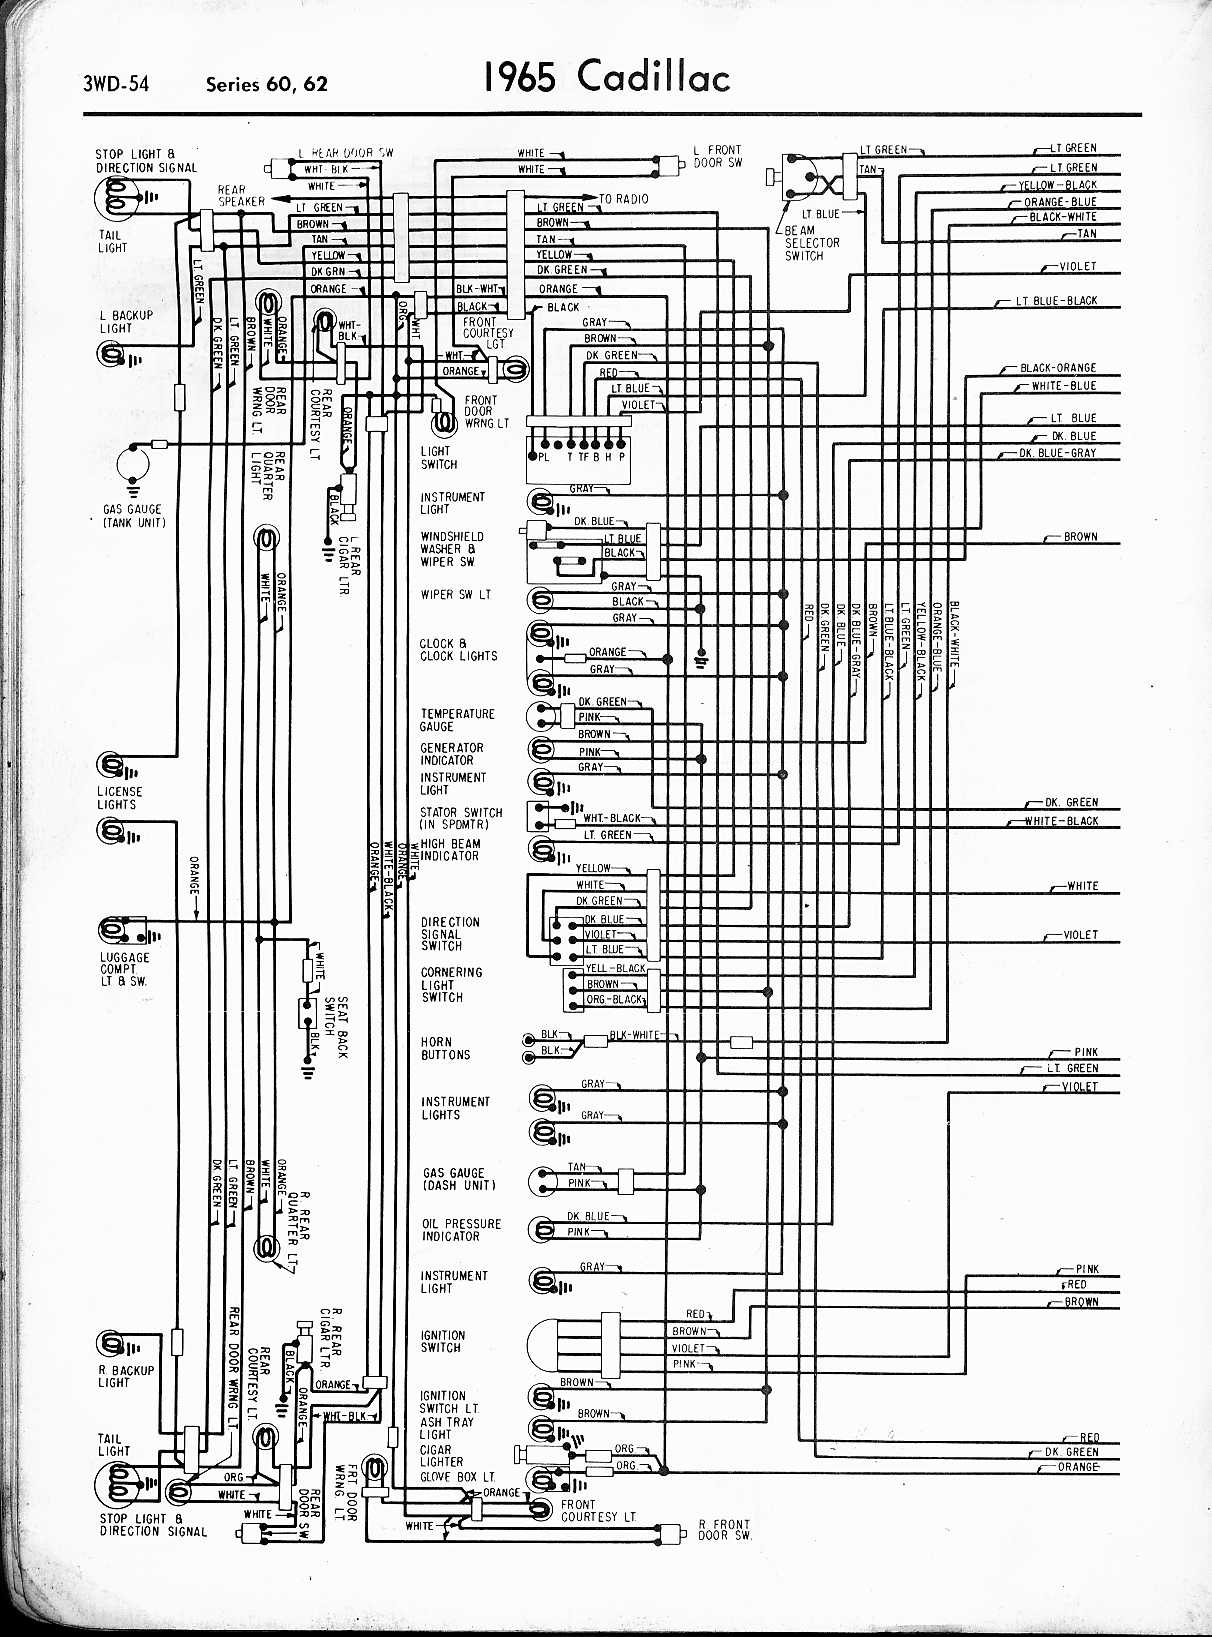 MWireCadi65_3WD 054 2000cad eldorado wiring diagram,eldorado \u2022 j squared co  at fashall.co